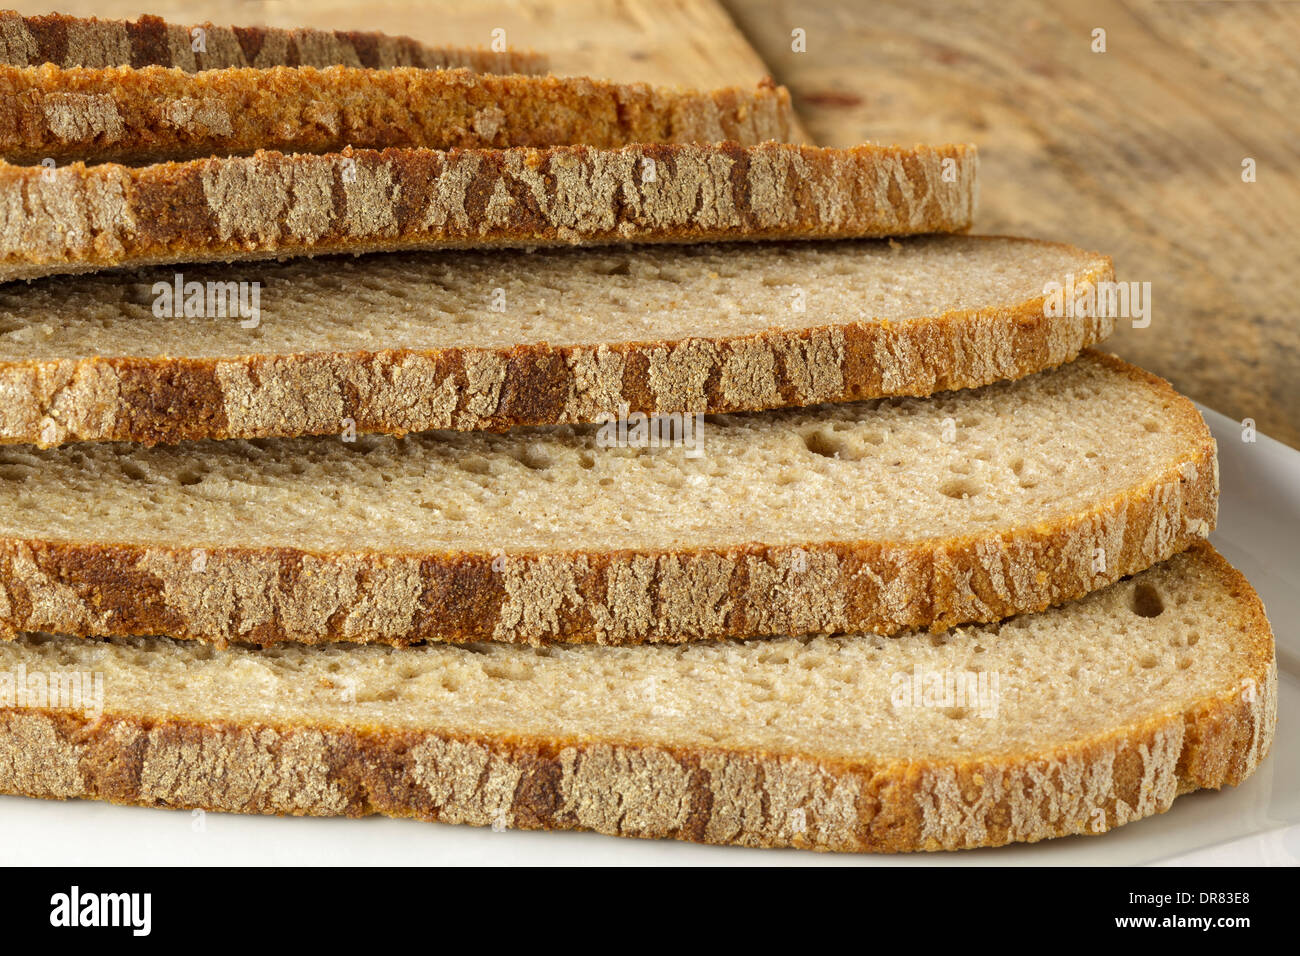 Sliced wholemeal bread - Stock Image